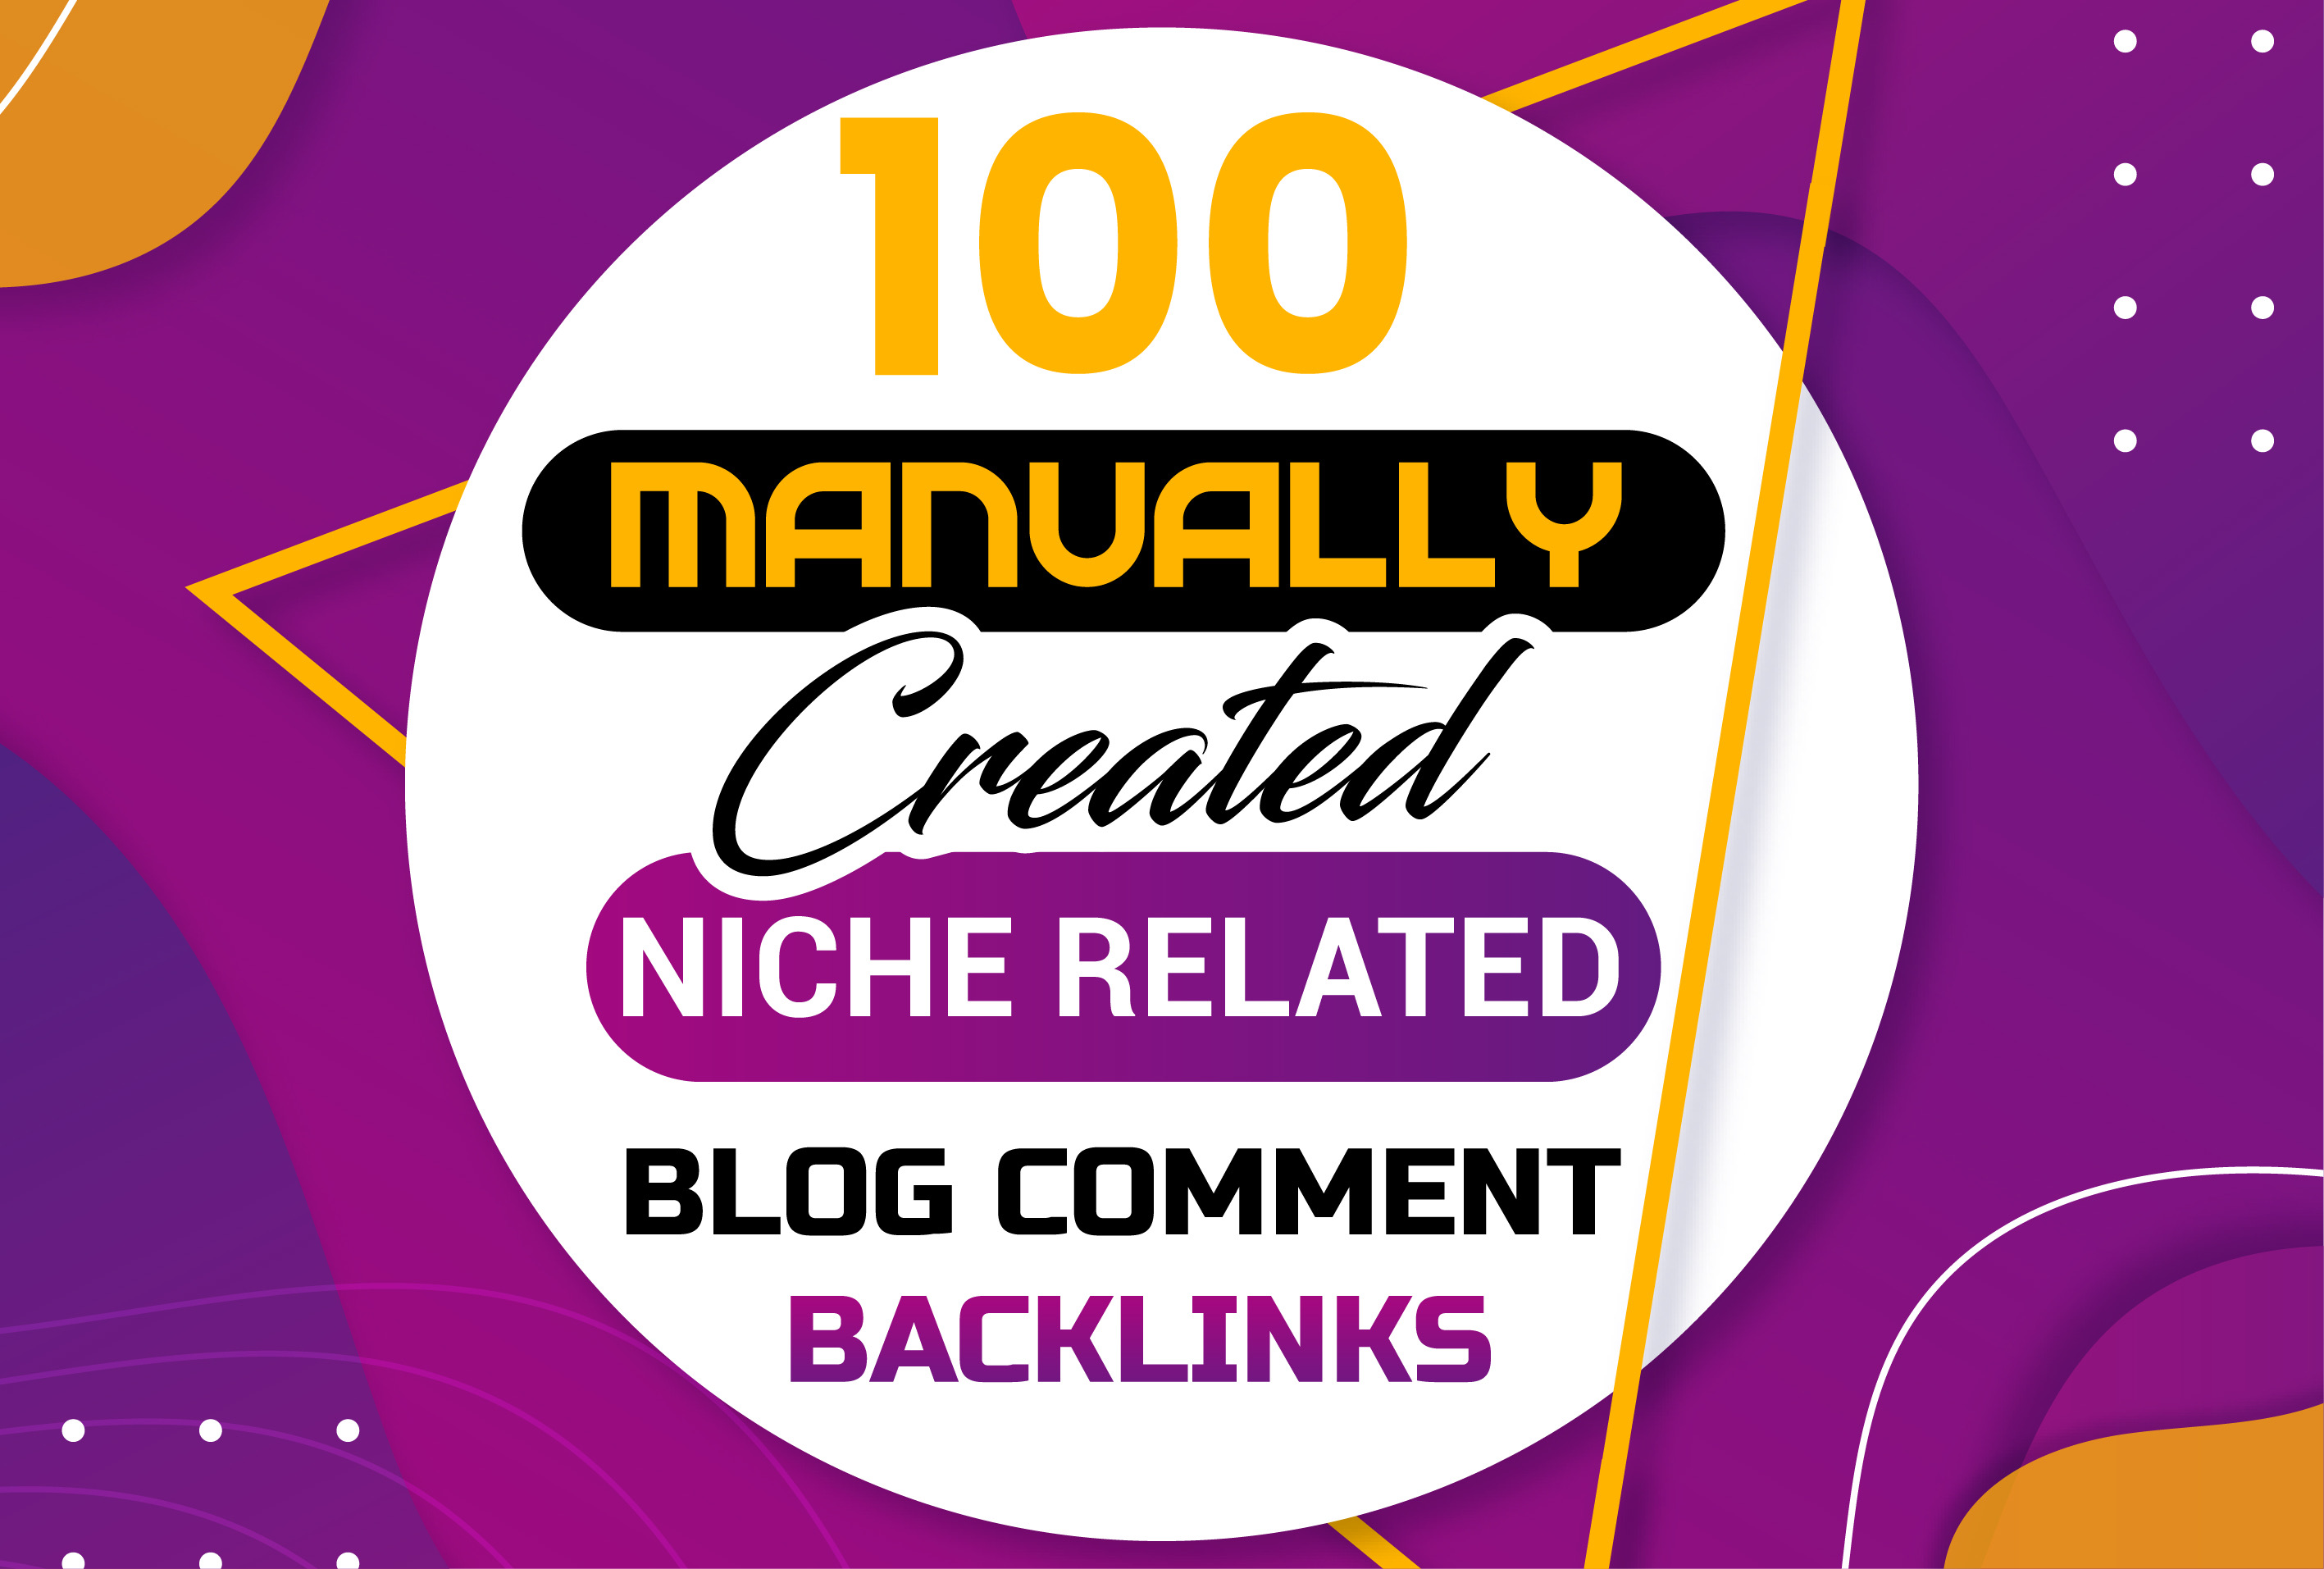 Provide 100 Manually Created Niche Related Blog Comment Backlinks